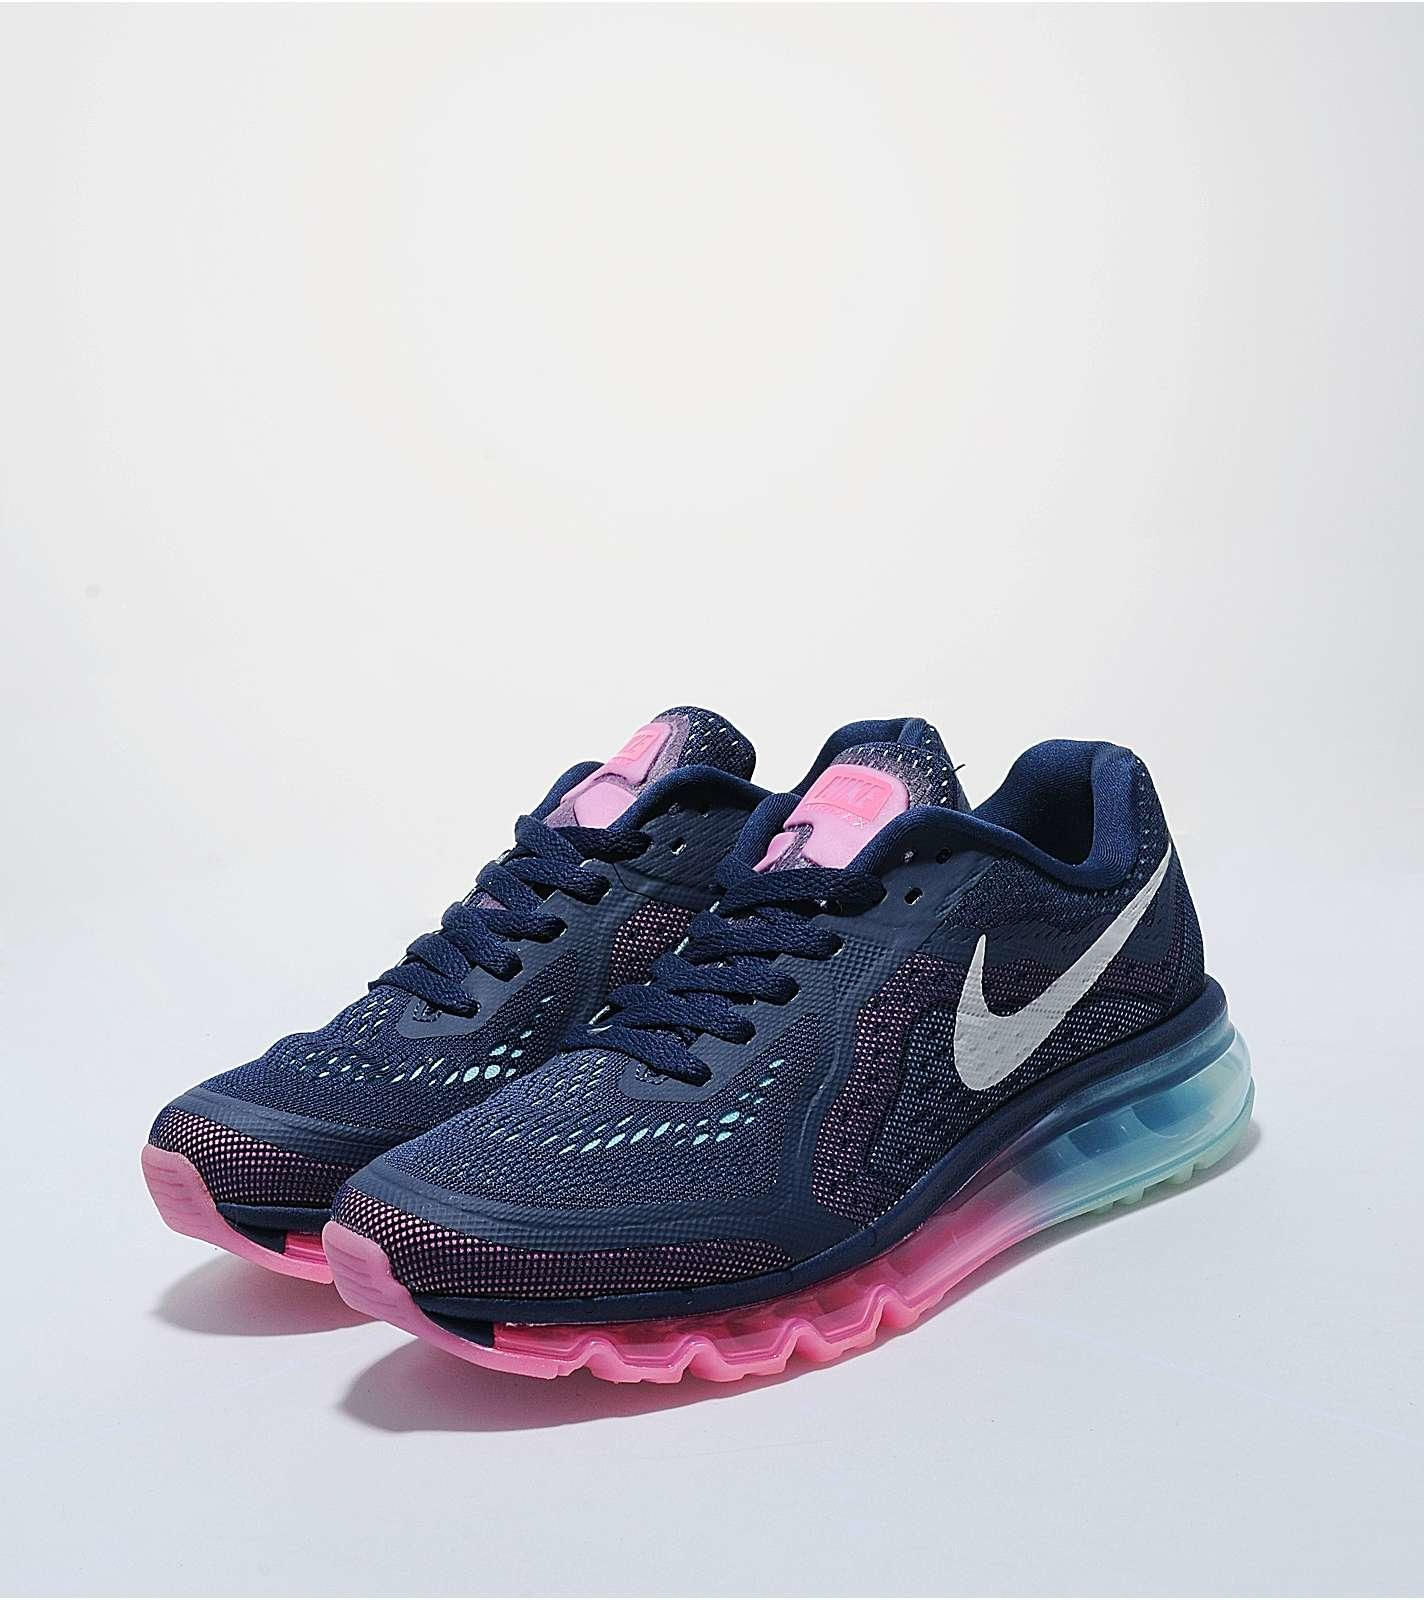 Harry Potter Bathroom Accessories Nike Women S Air Max 2014 From Size Shoes